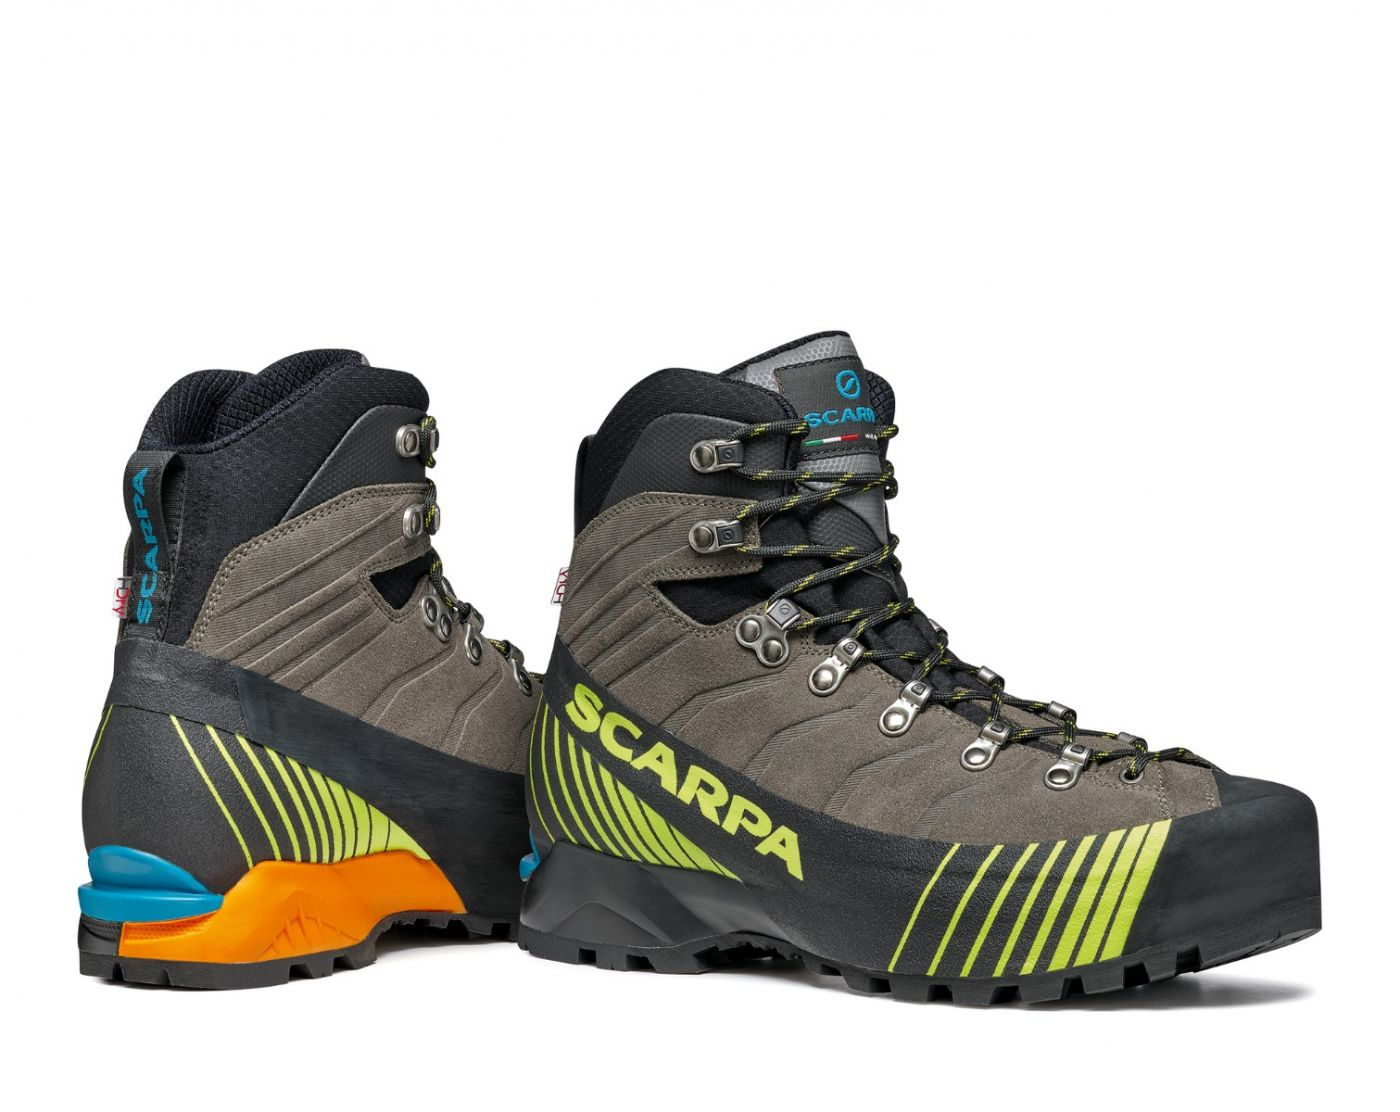 essentials for south African winter hiking